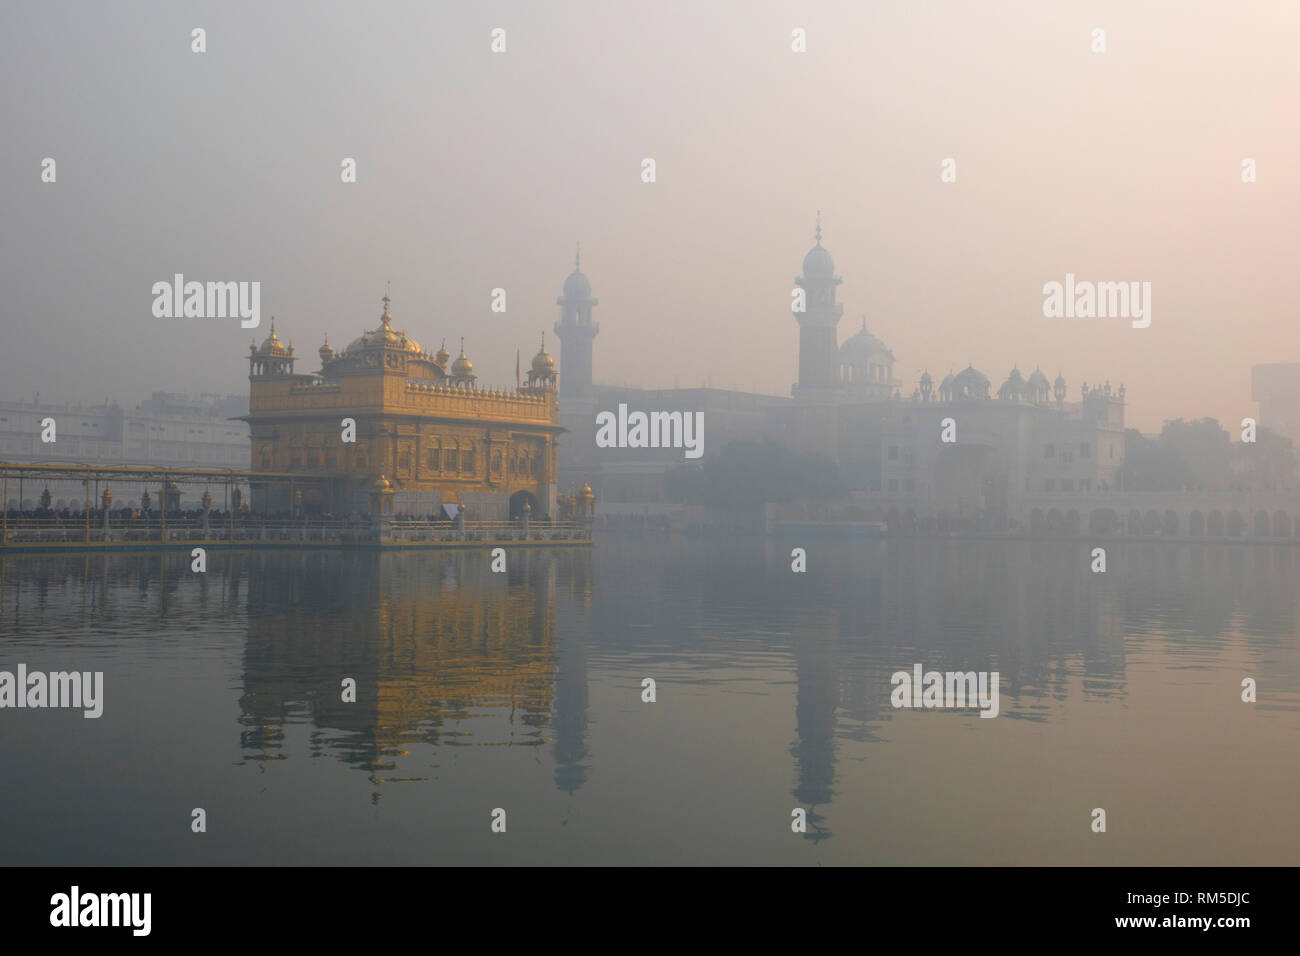 Golden temple shrouded by high levels of air pollution in Amritsar, Punjab, India - Stock Image